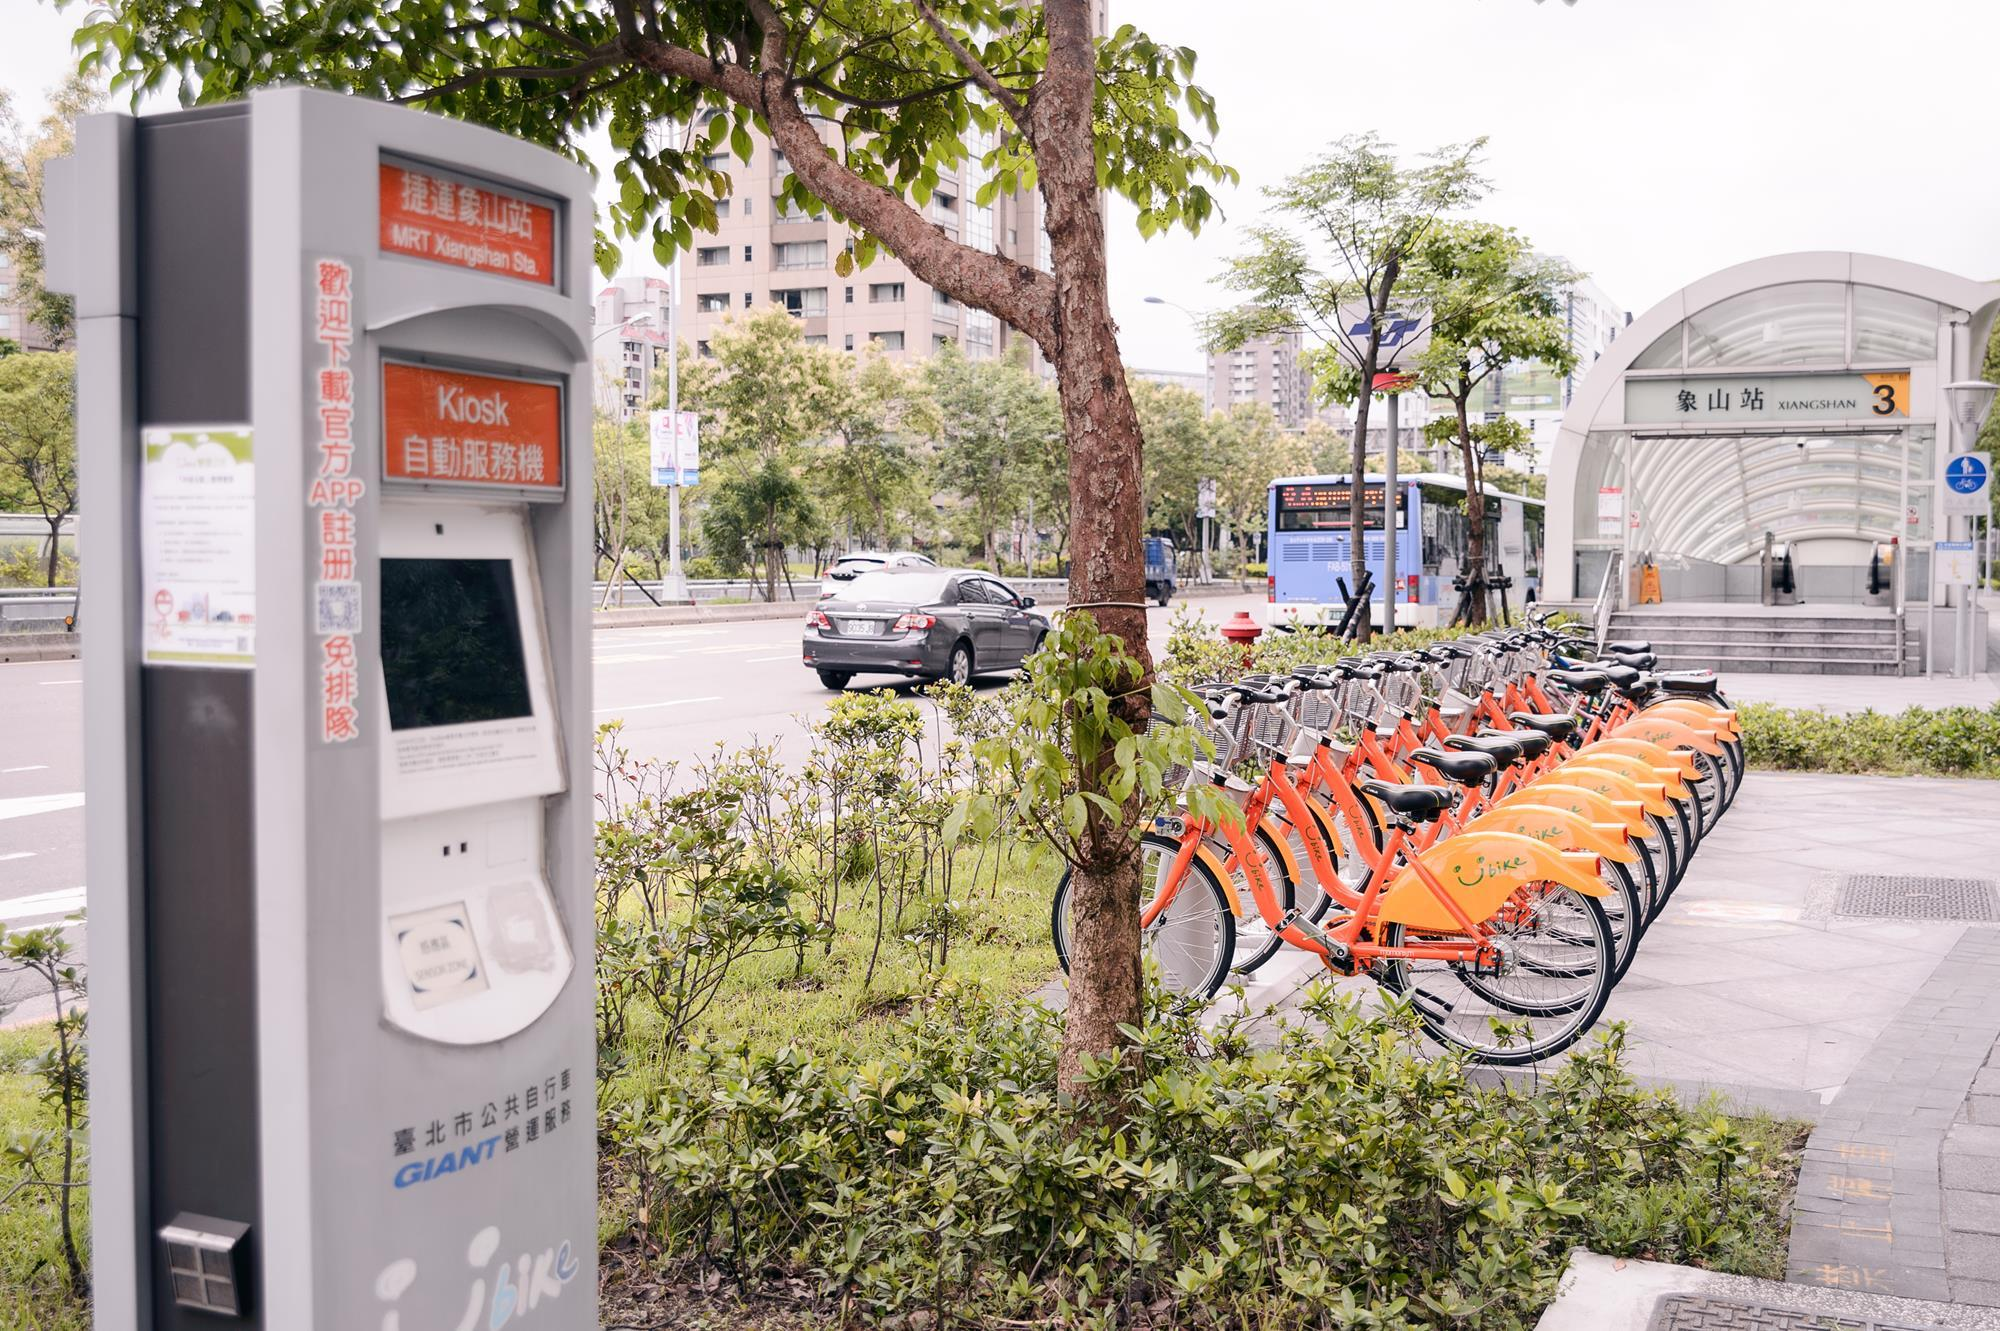 Bike Sharing System-YouBike